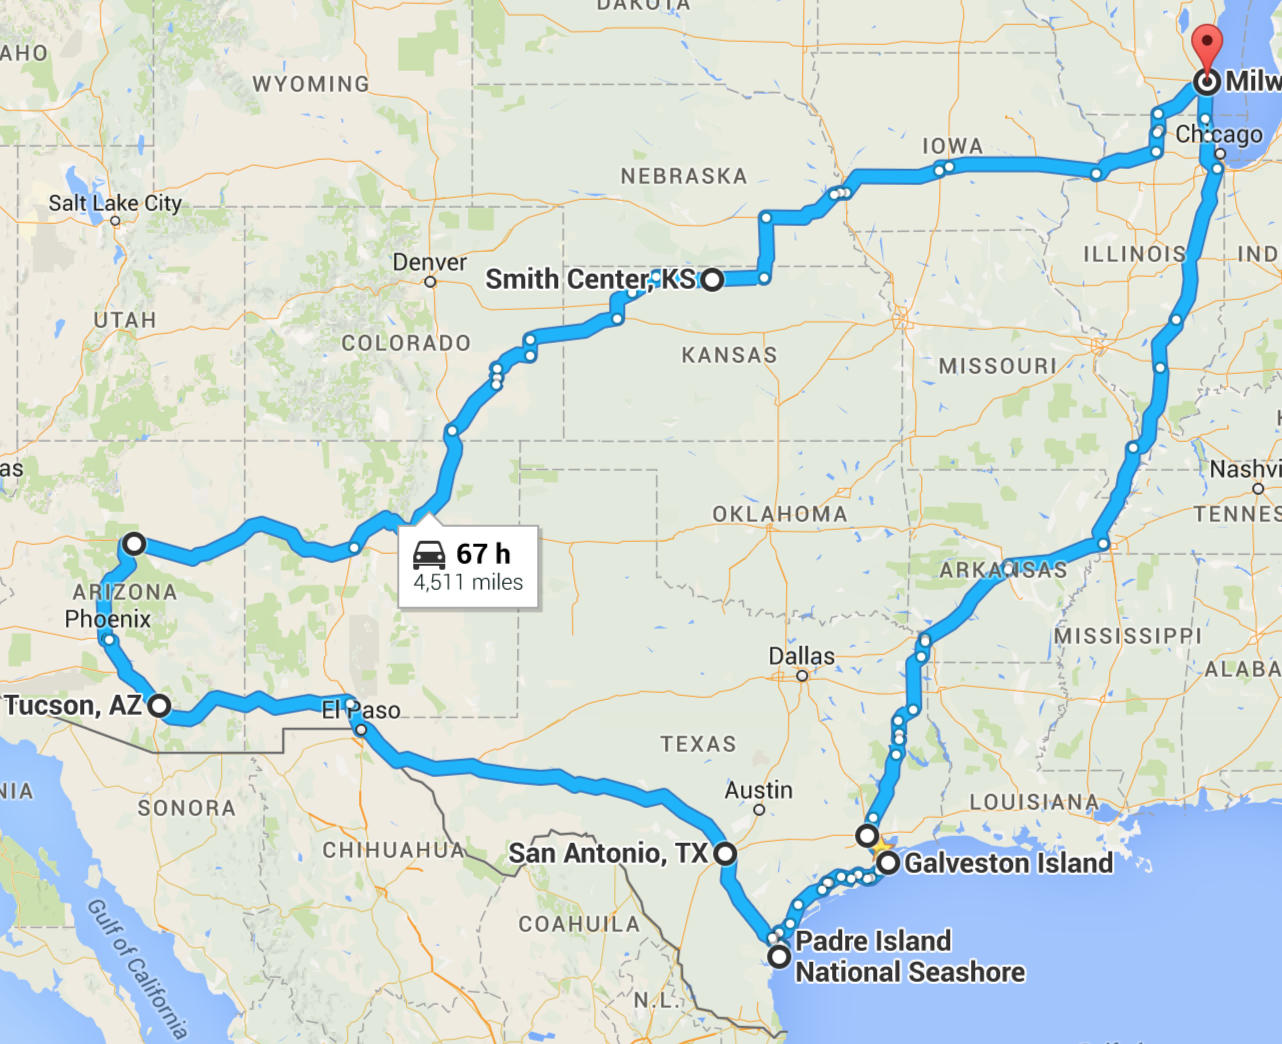 Approximate route for this trip